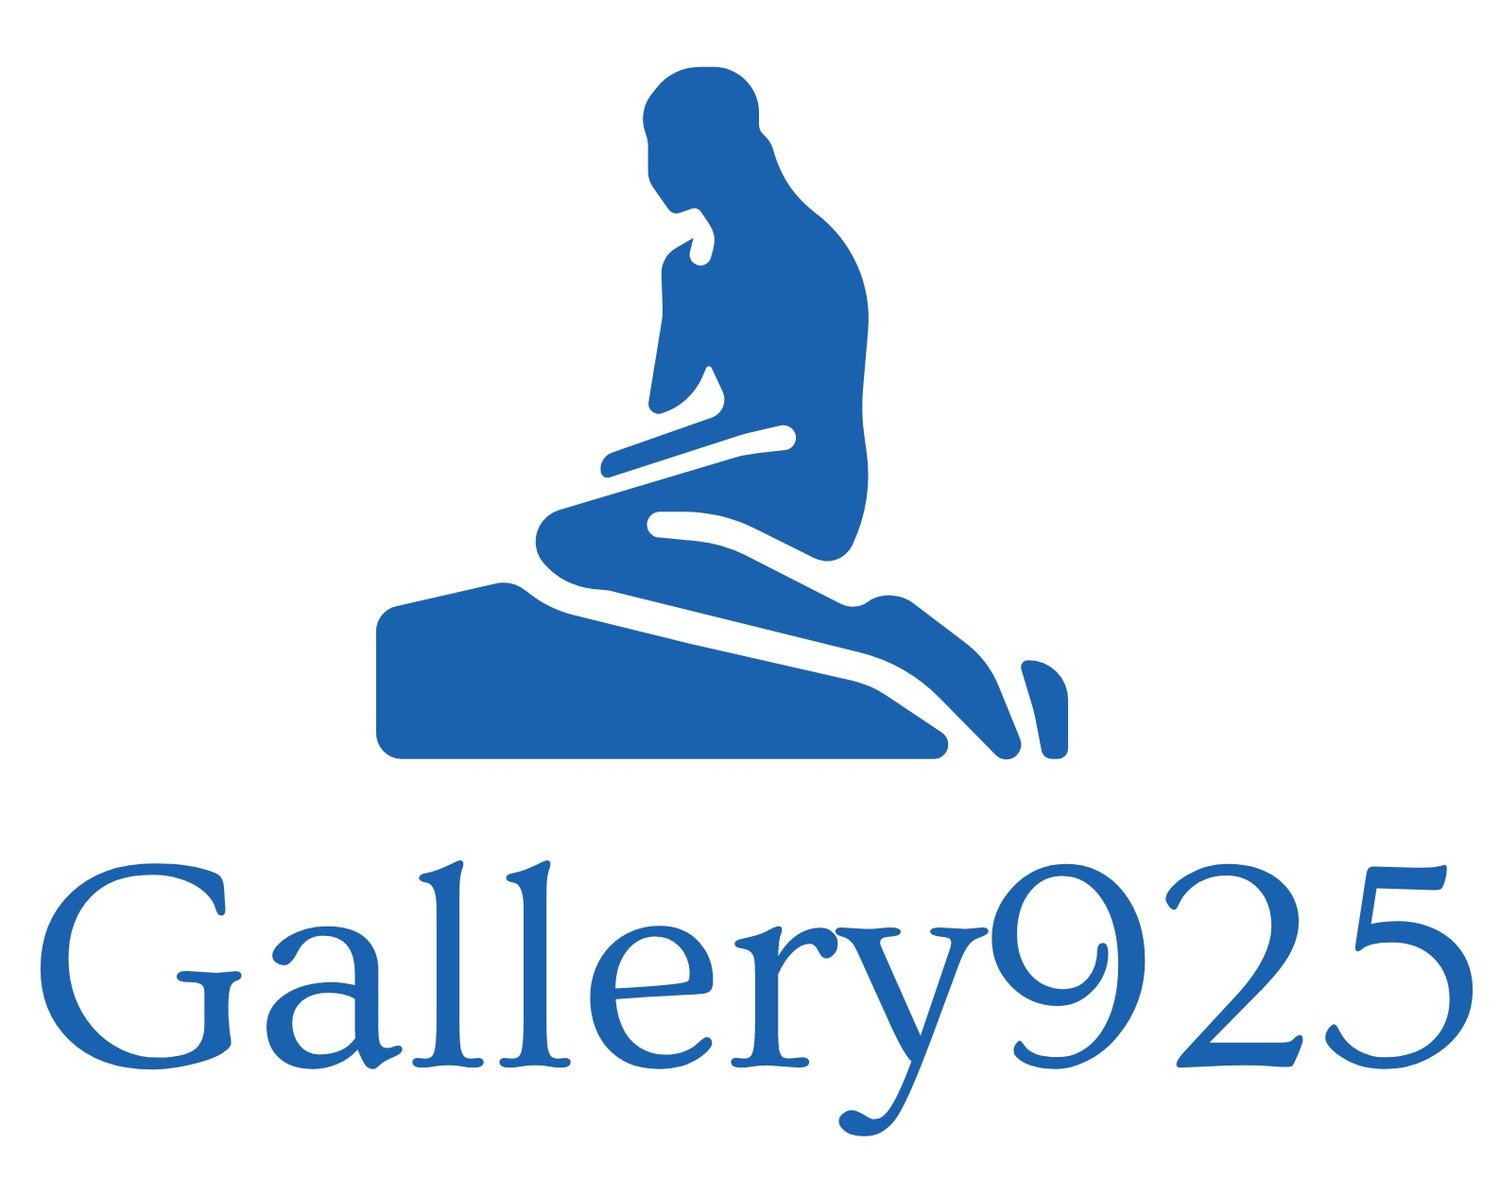 gallery925